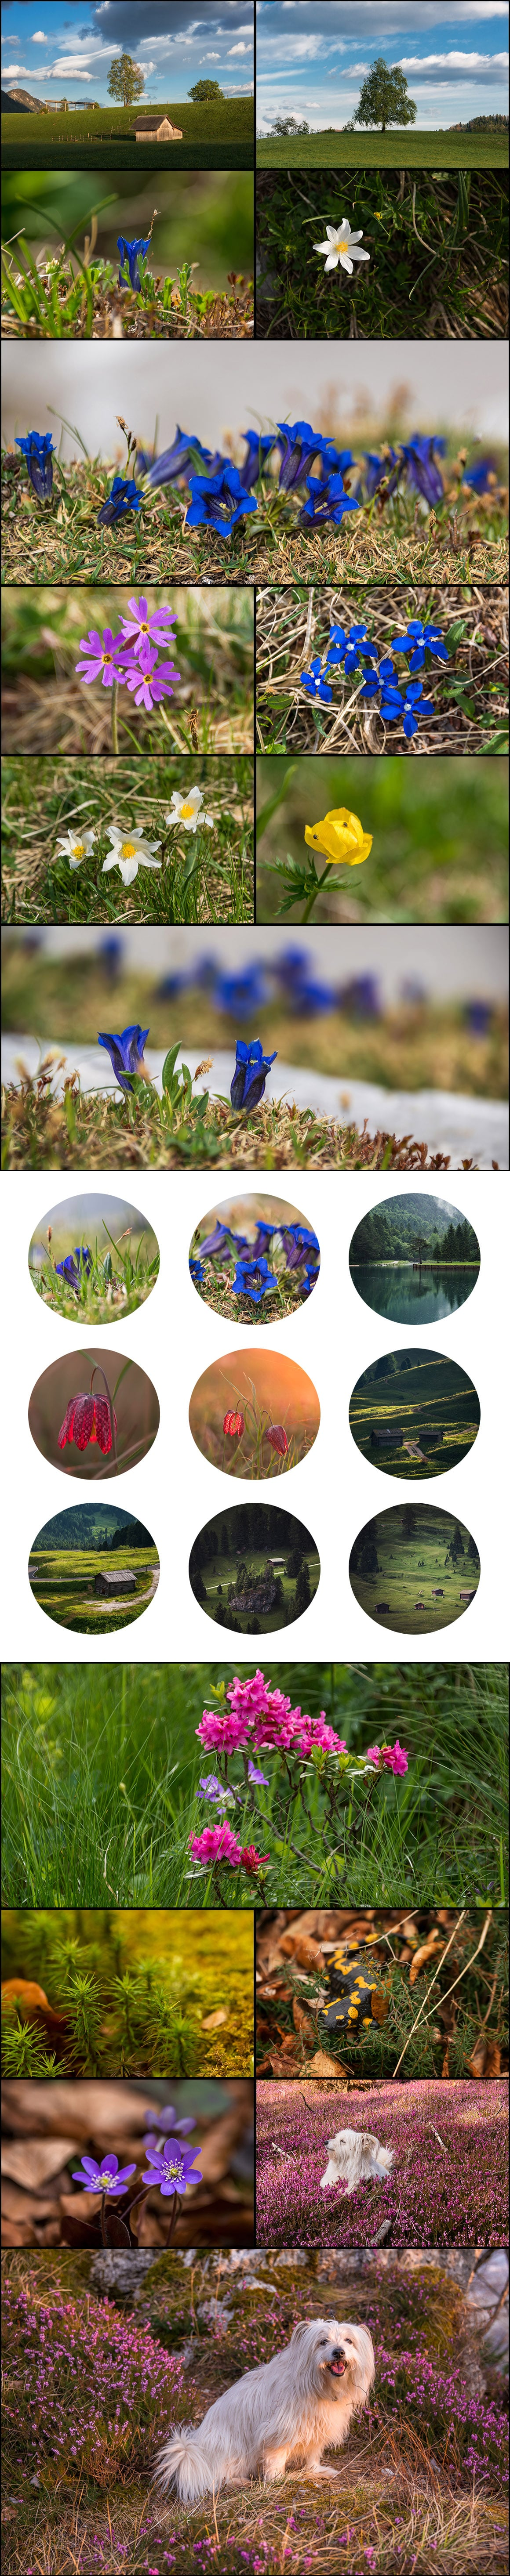 500+ Stock Images. Ultimate Photo Bundle  – $59 - PREVIEW nature1